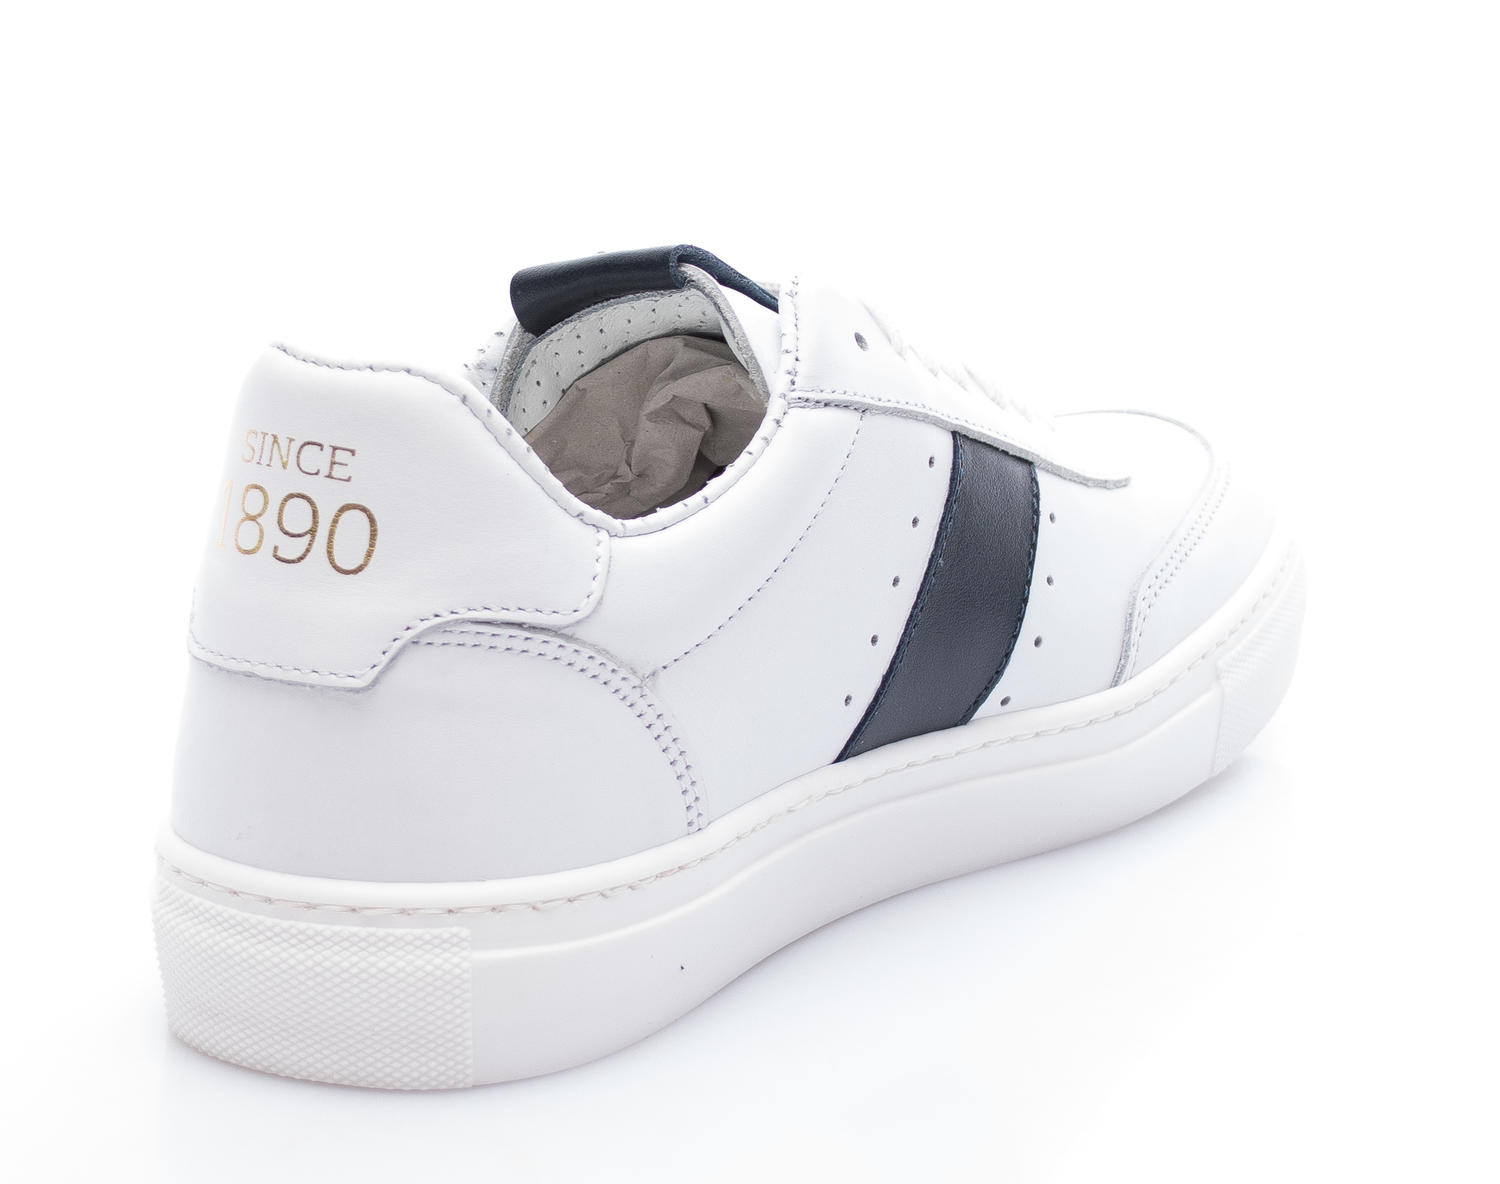 Men's shoes - U.S. sneakers POLO ASSN. LANDON, in leather